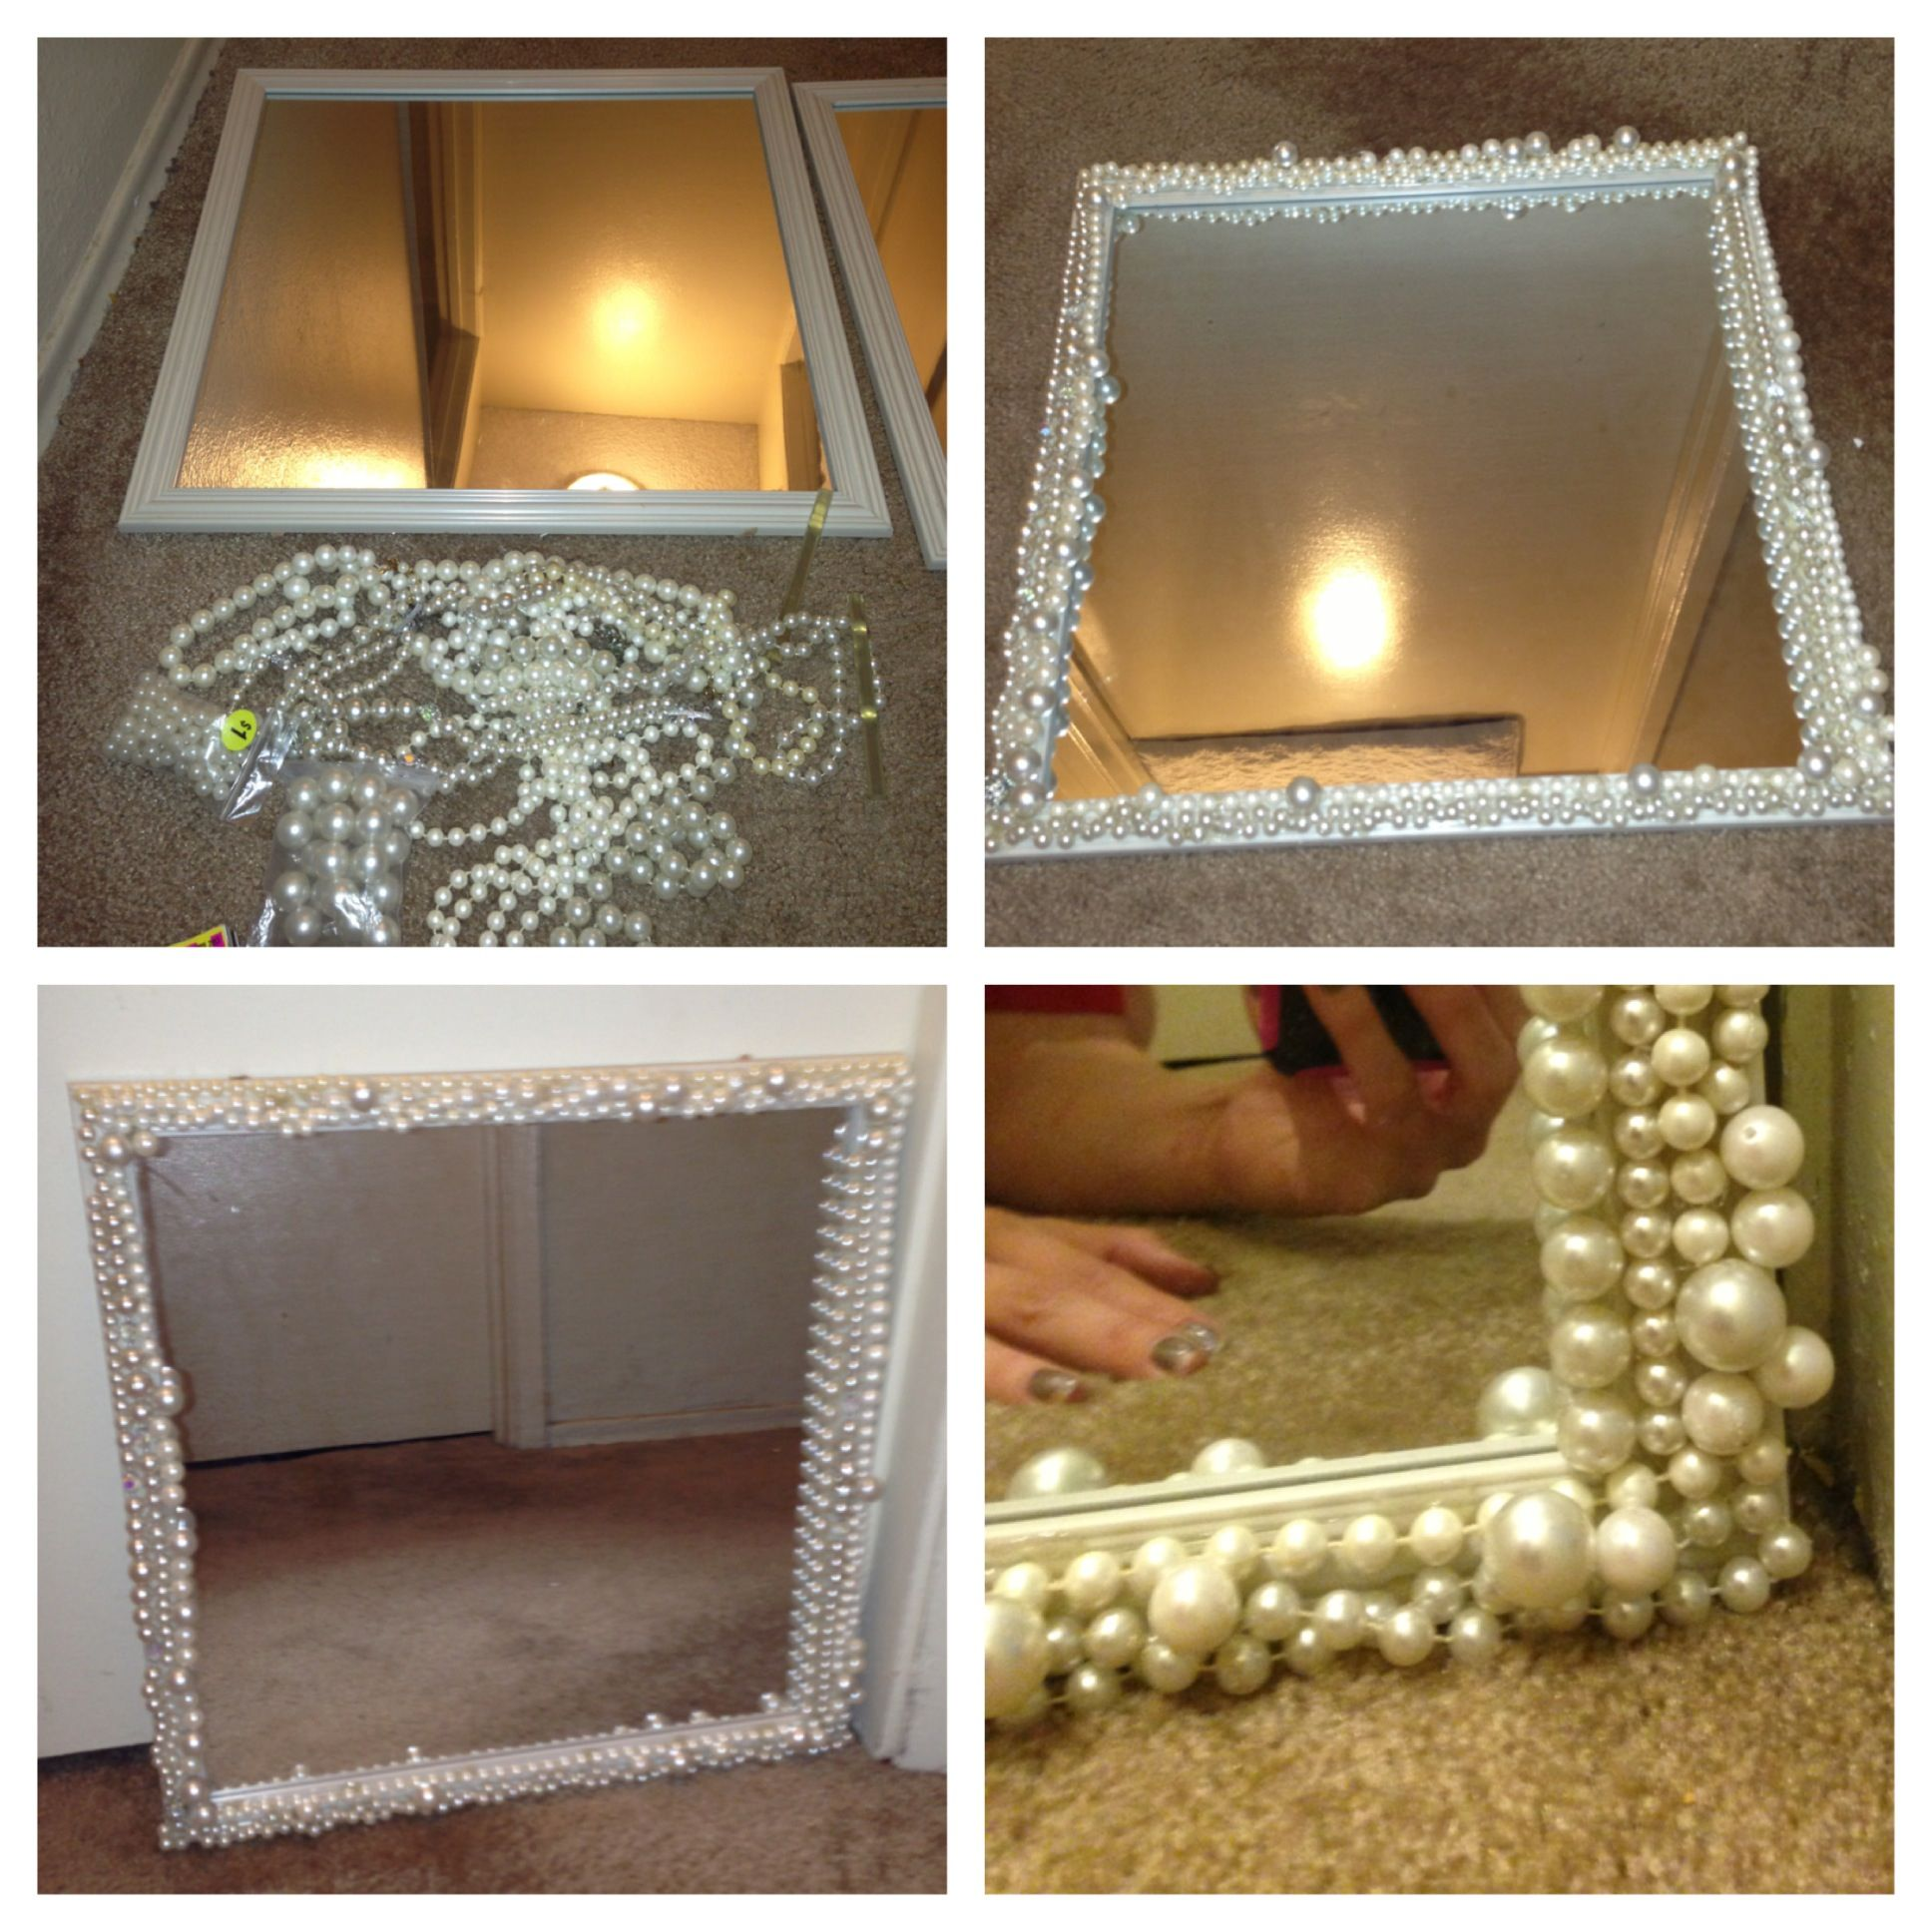 My Diy Pearl Mirror Found The Mirror In My Laundry Room Bought The Pearls At A Swap Meet For 8 This Will Be For My Make Diy Home Decor Home